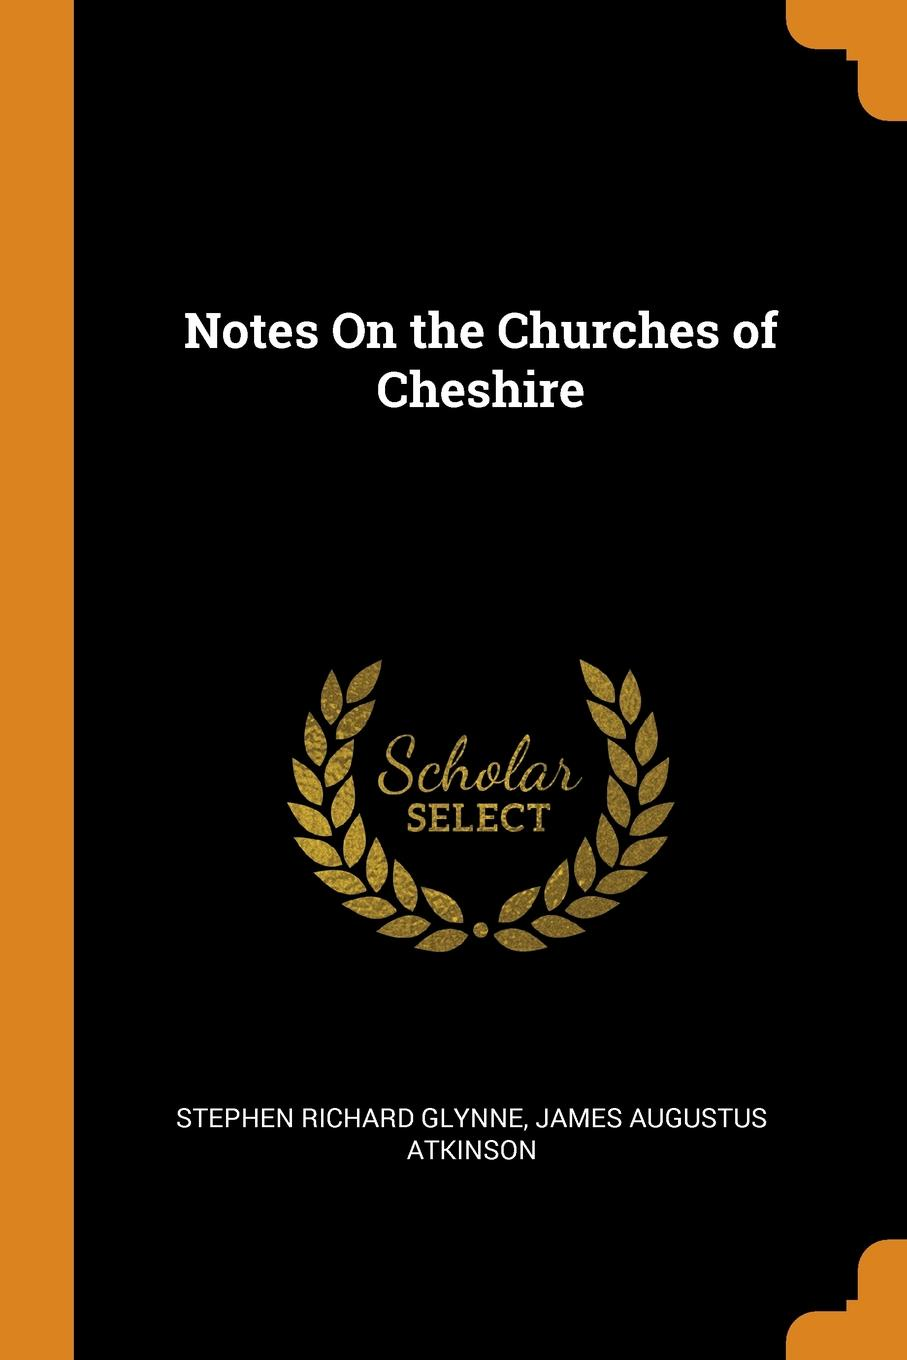 Stephen Richard Glynne, James Augustus Atkinson. Notes On the Churches of Cheshire